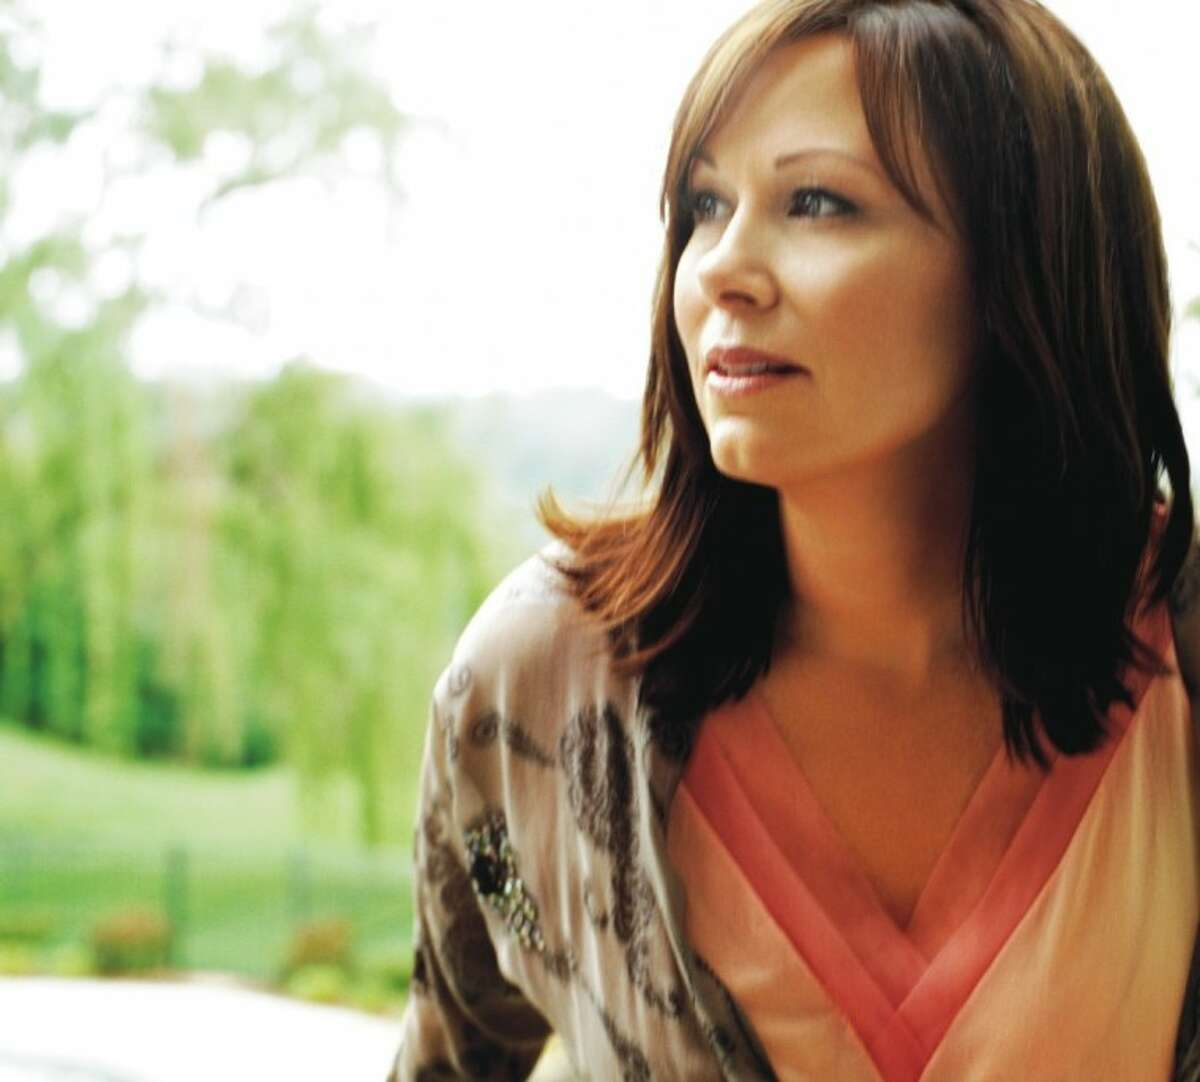 The Montgomery County Performing Arts Society brings Suzy Bogguss to the Crighton Theatre on Jan. 14.